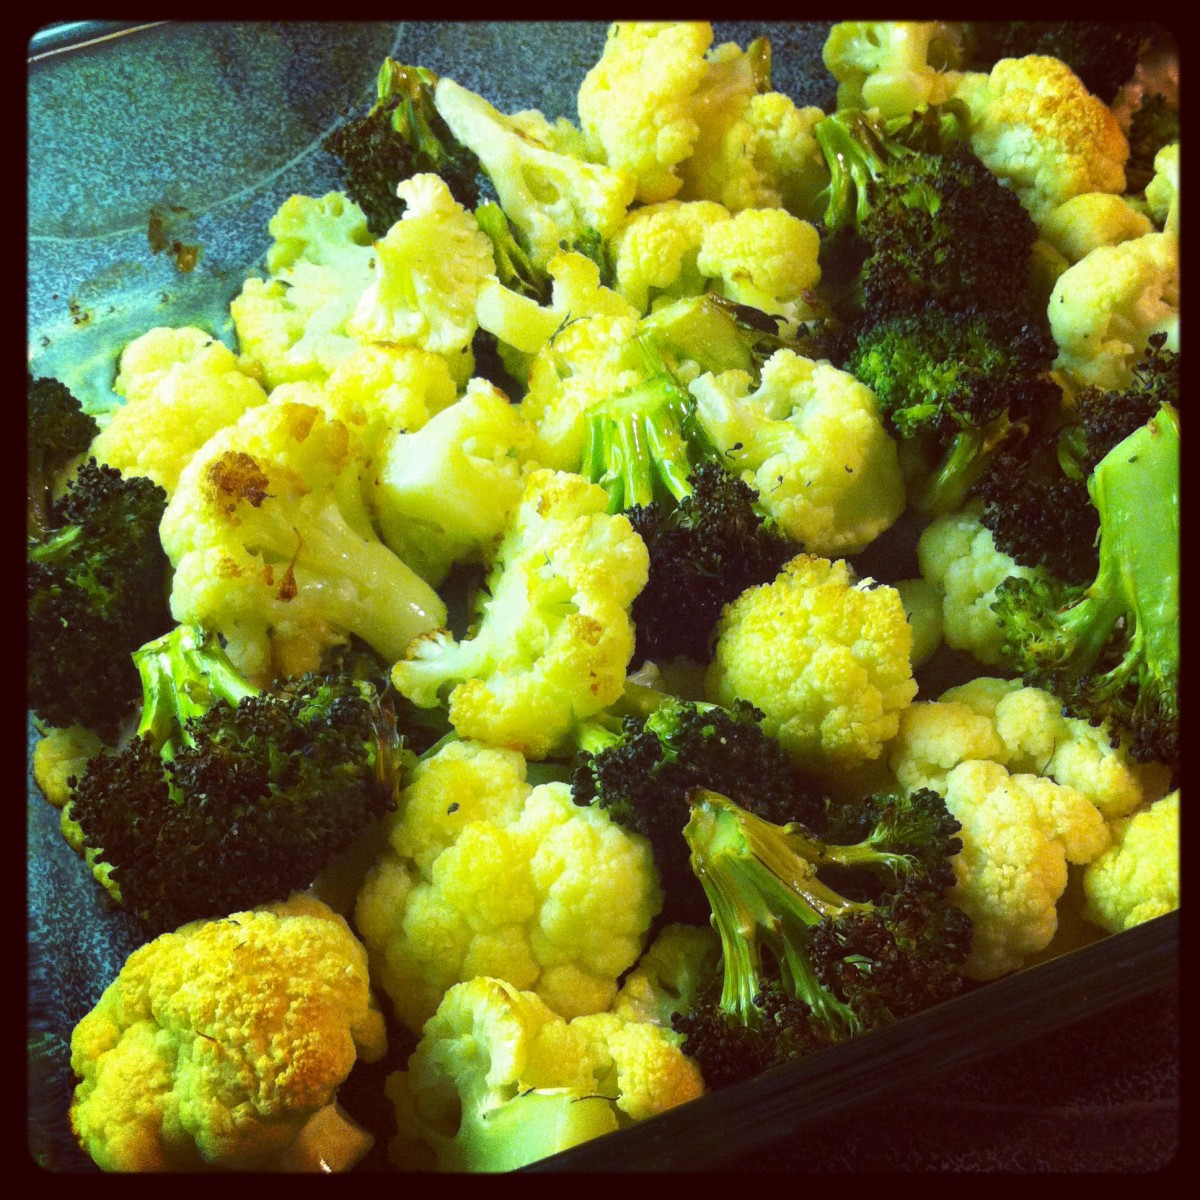 How to Make Broccoli and Cauliflower That Even Your Kids Will Think Tastes Good